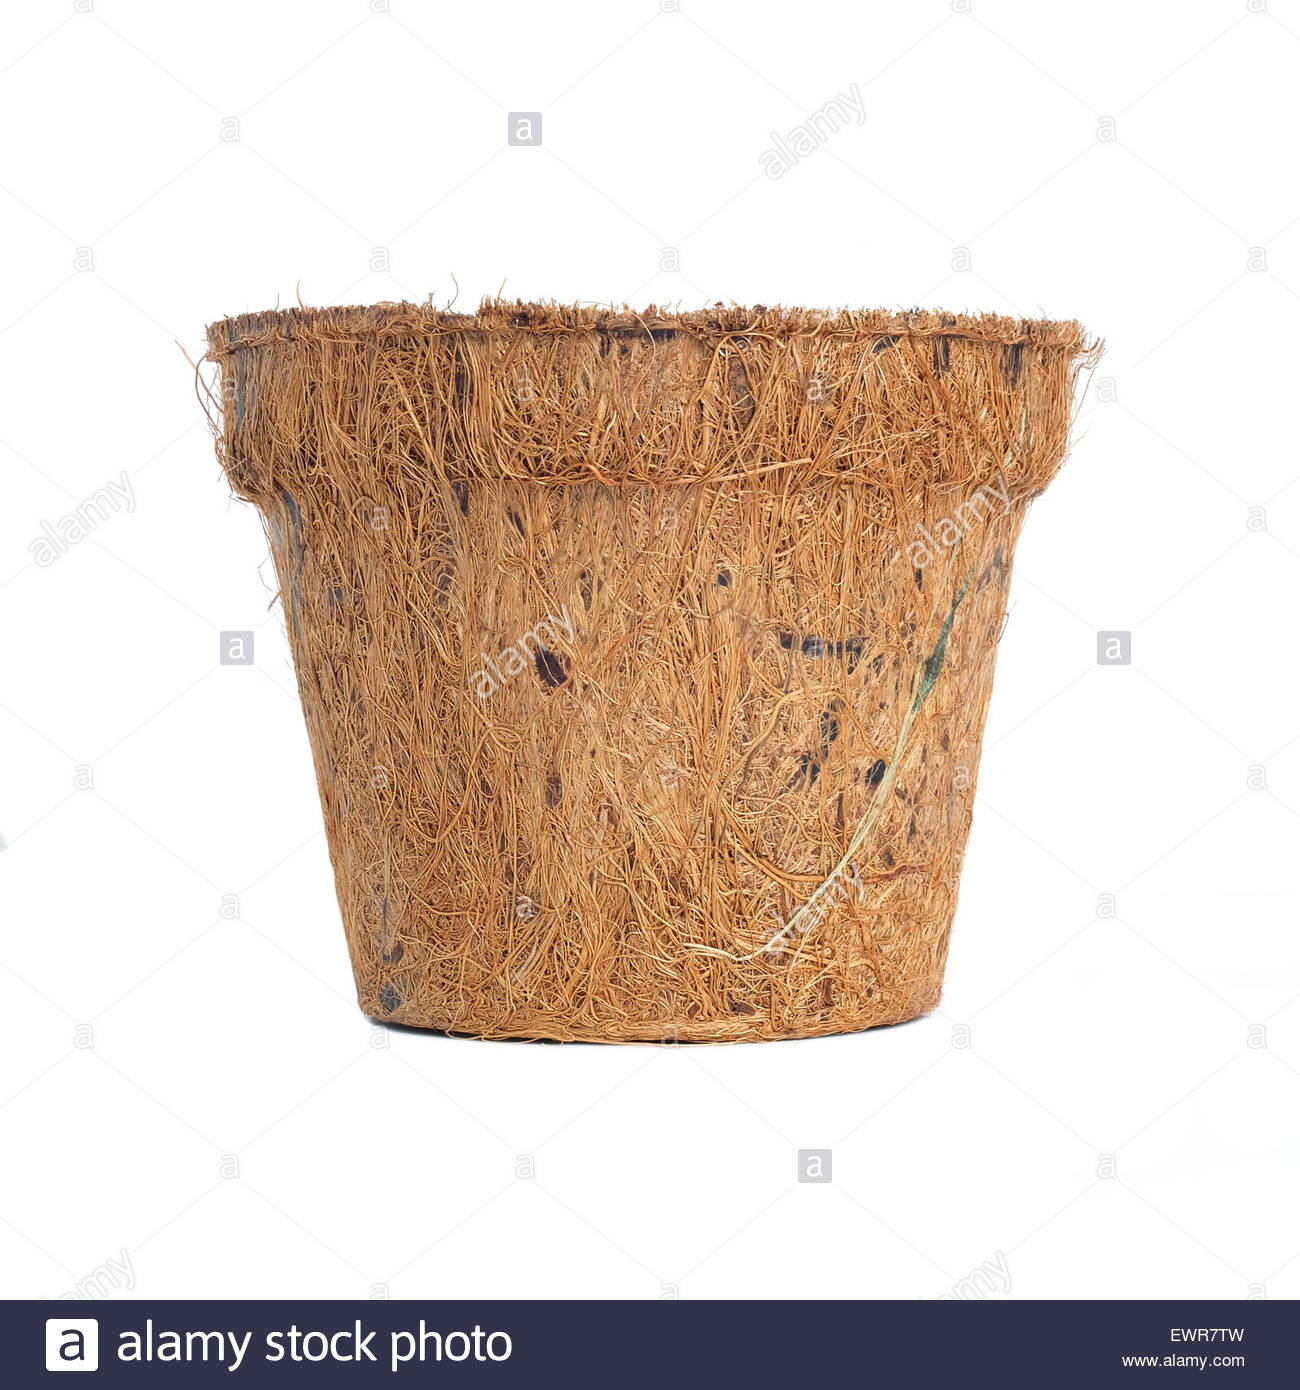 Biodegradable plant pot made from coconut husk, isolated on white background - Stock Image